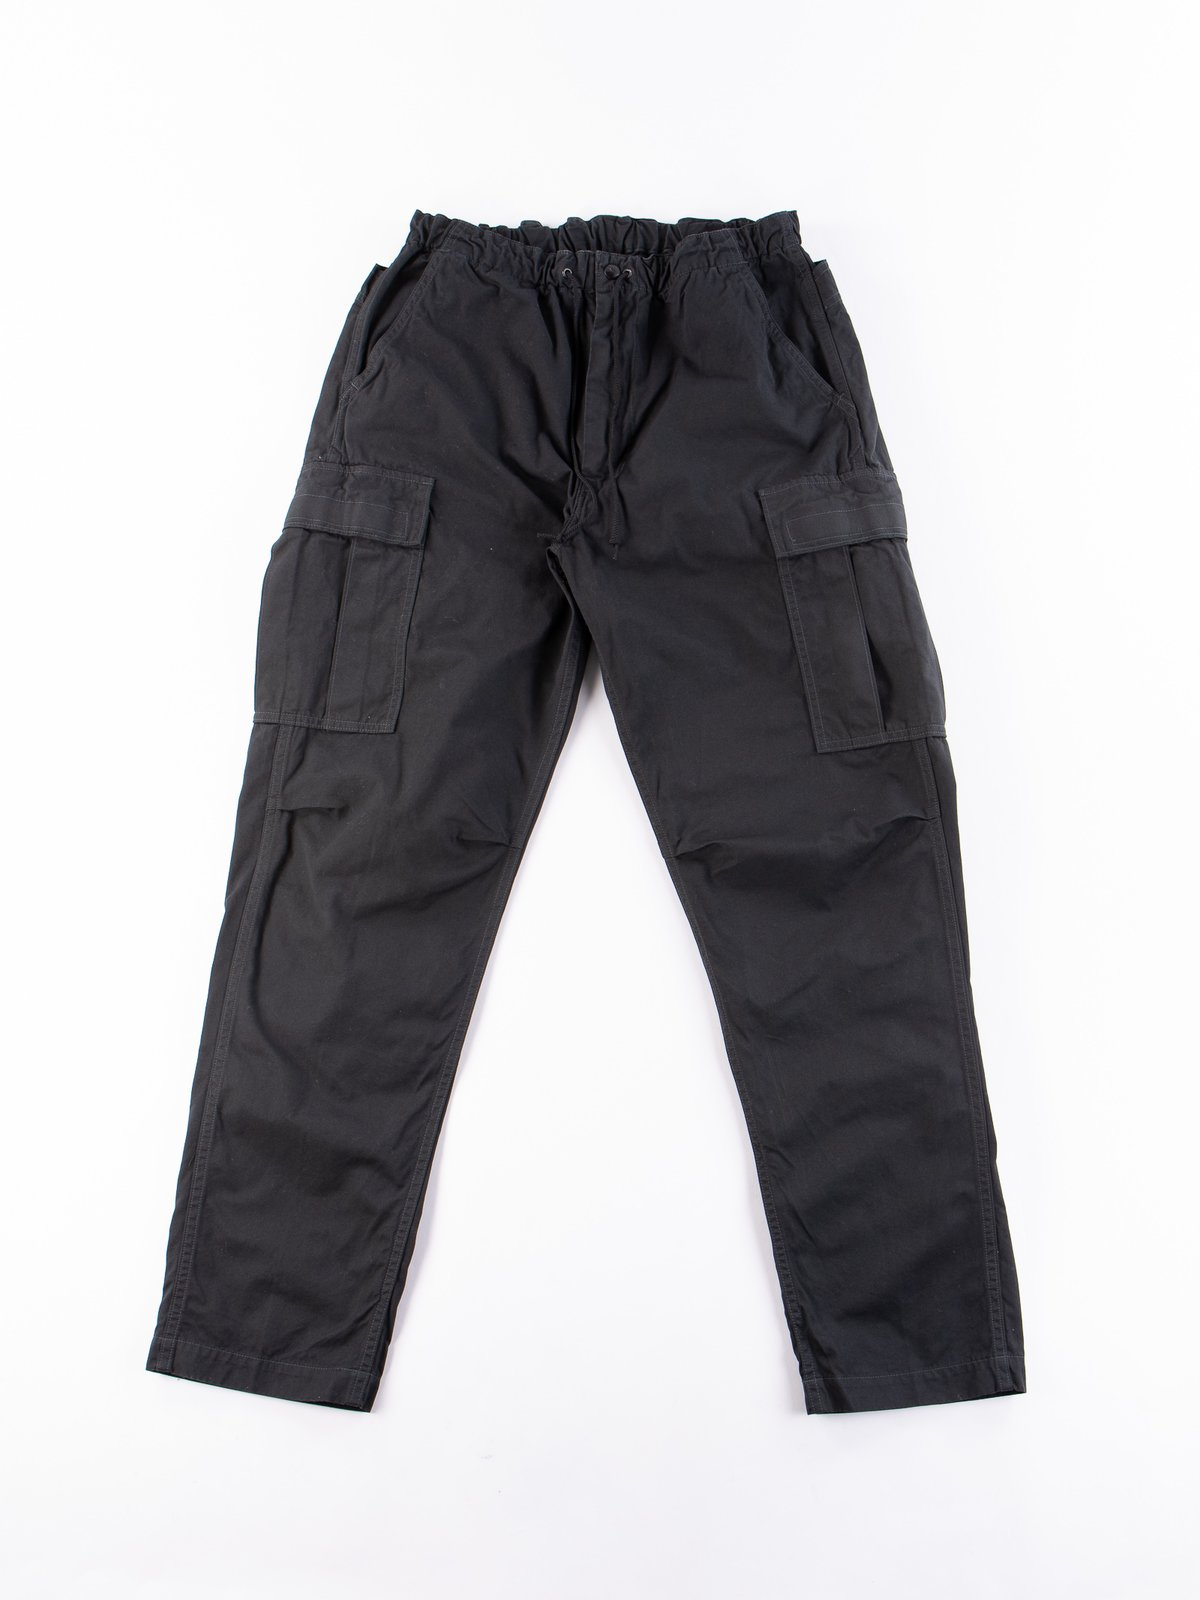 Grey Weather Cloth Easy Cargo Pant - Image 1